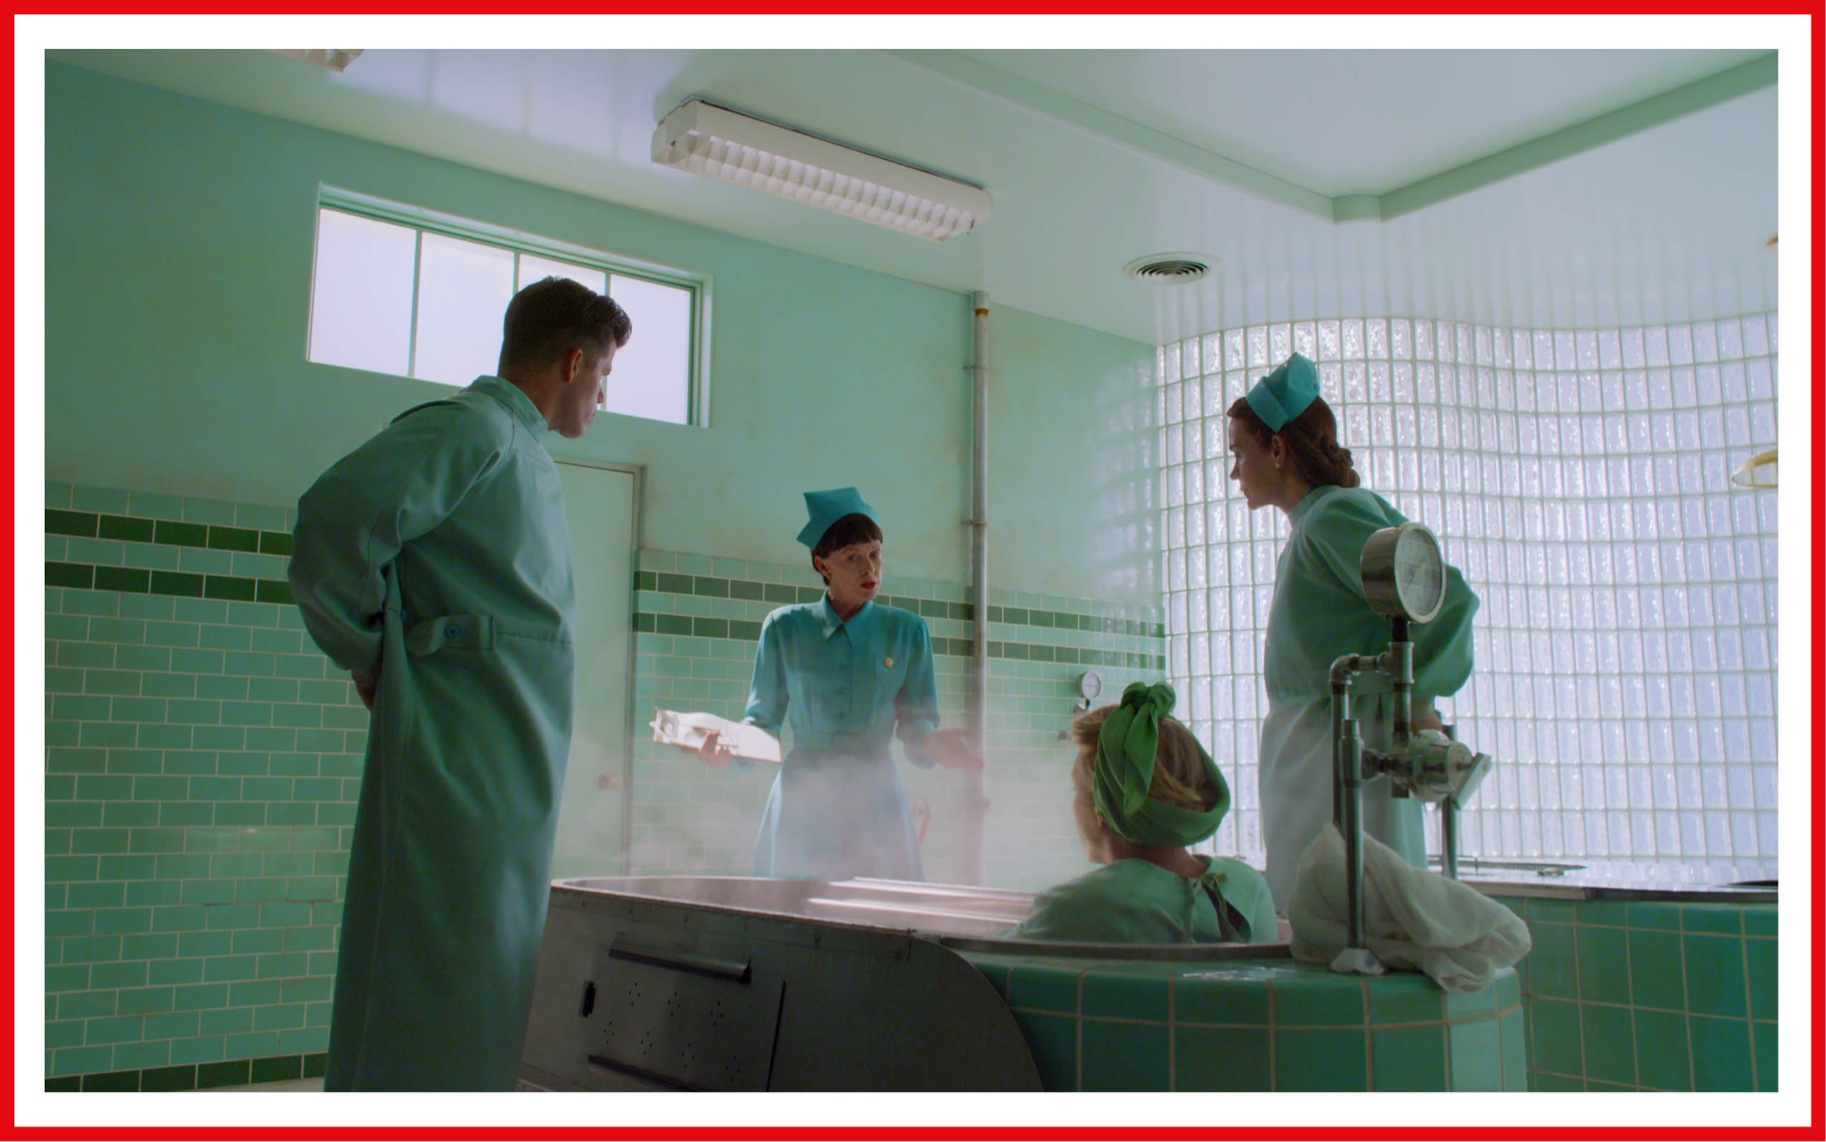 Between the tiled hospital walls and the actors' nurse costumes, it's green overload.